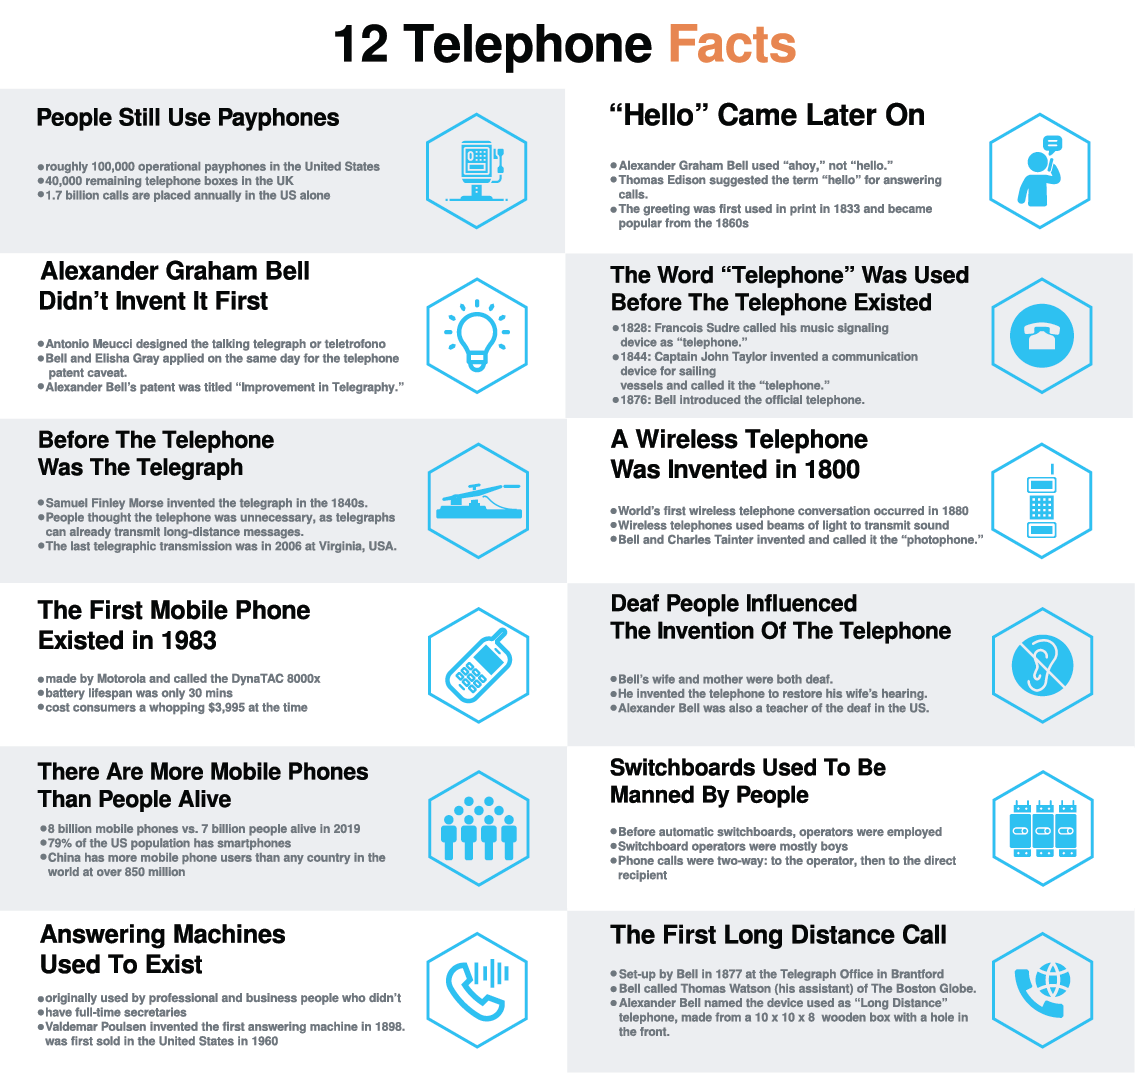 12 telephone facts infograhics